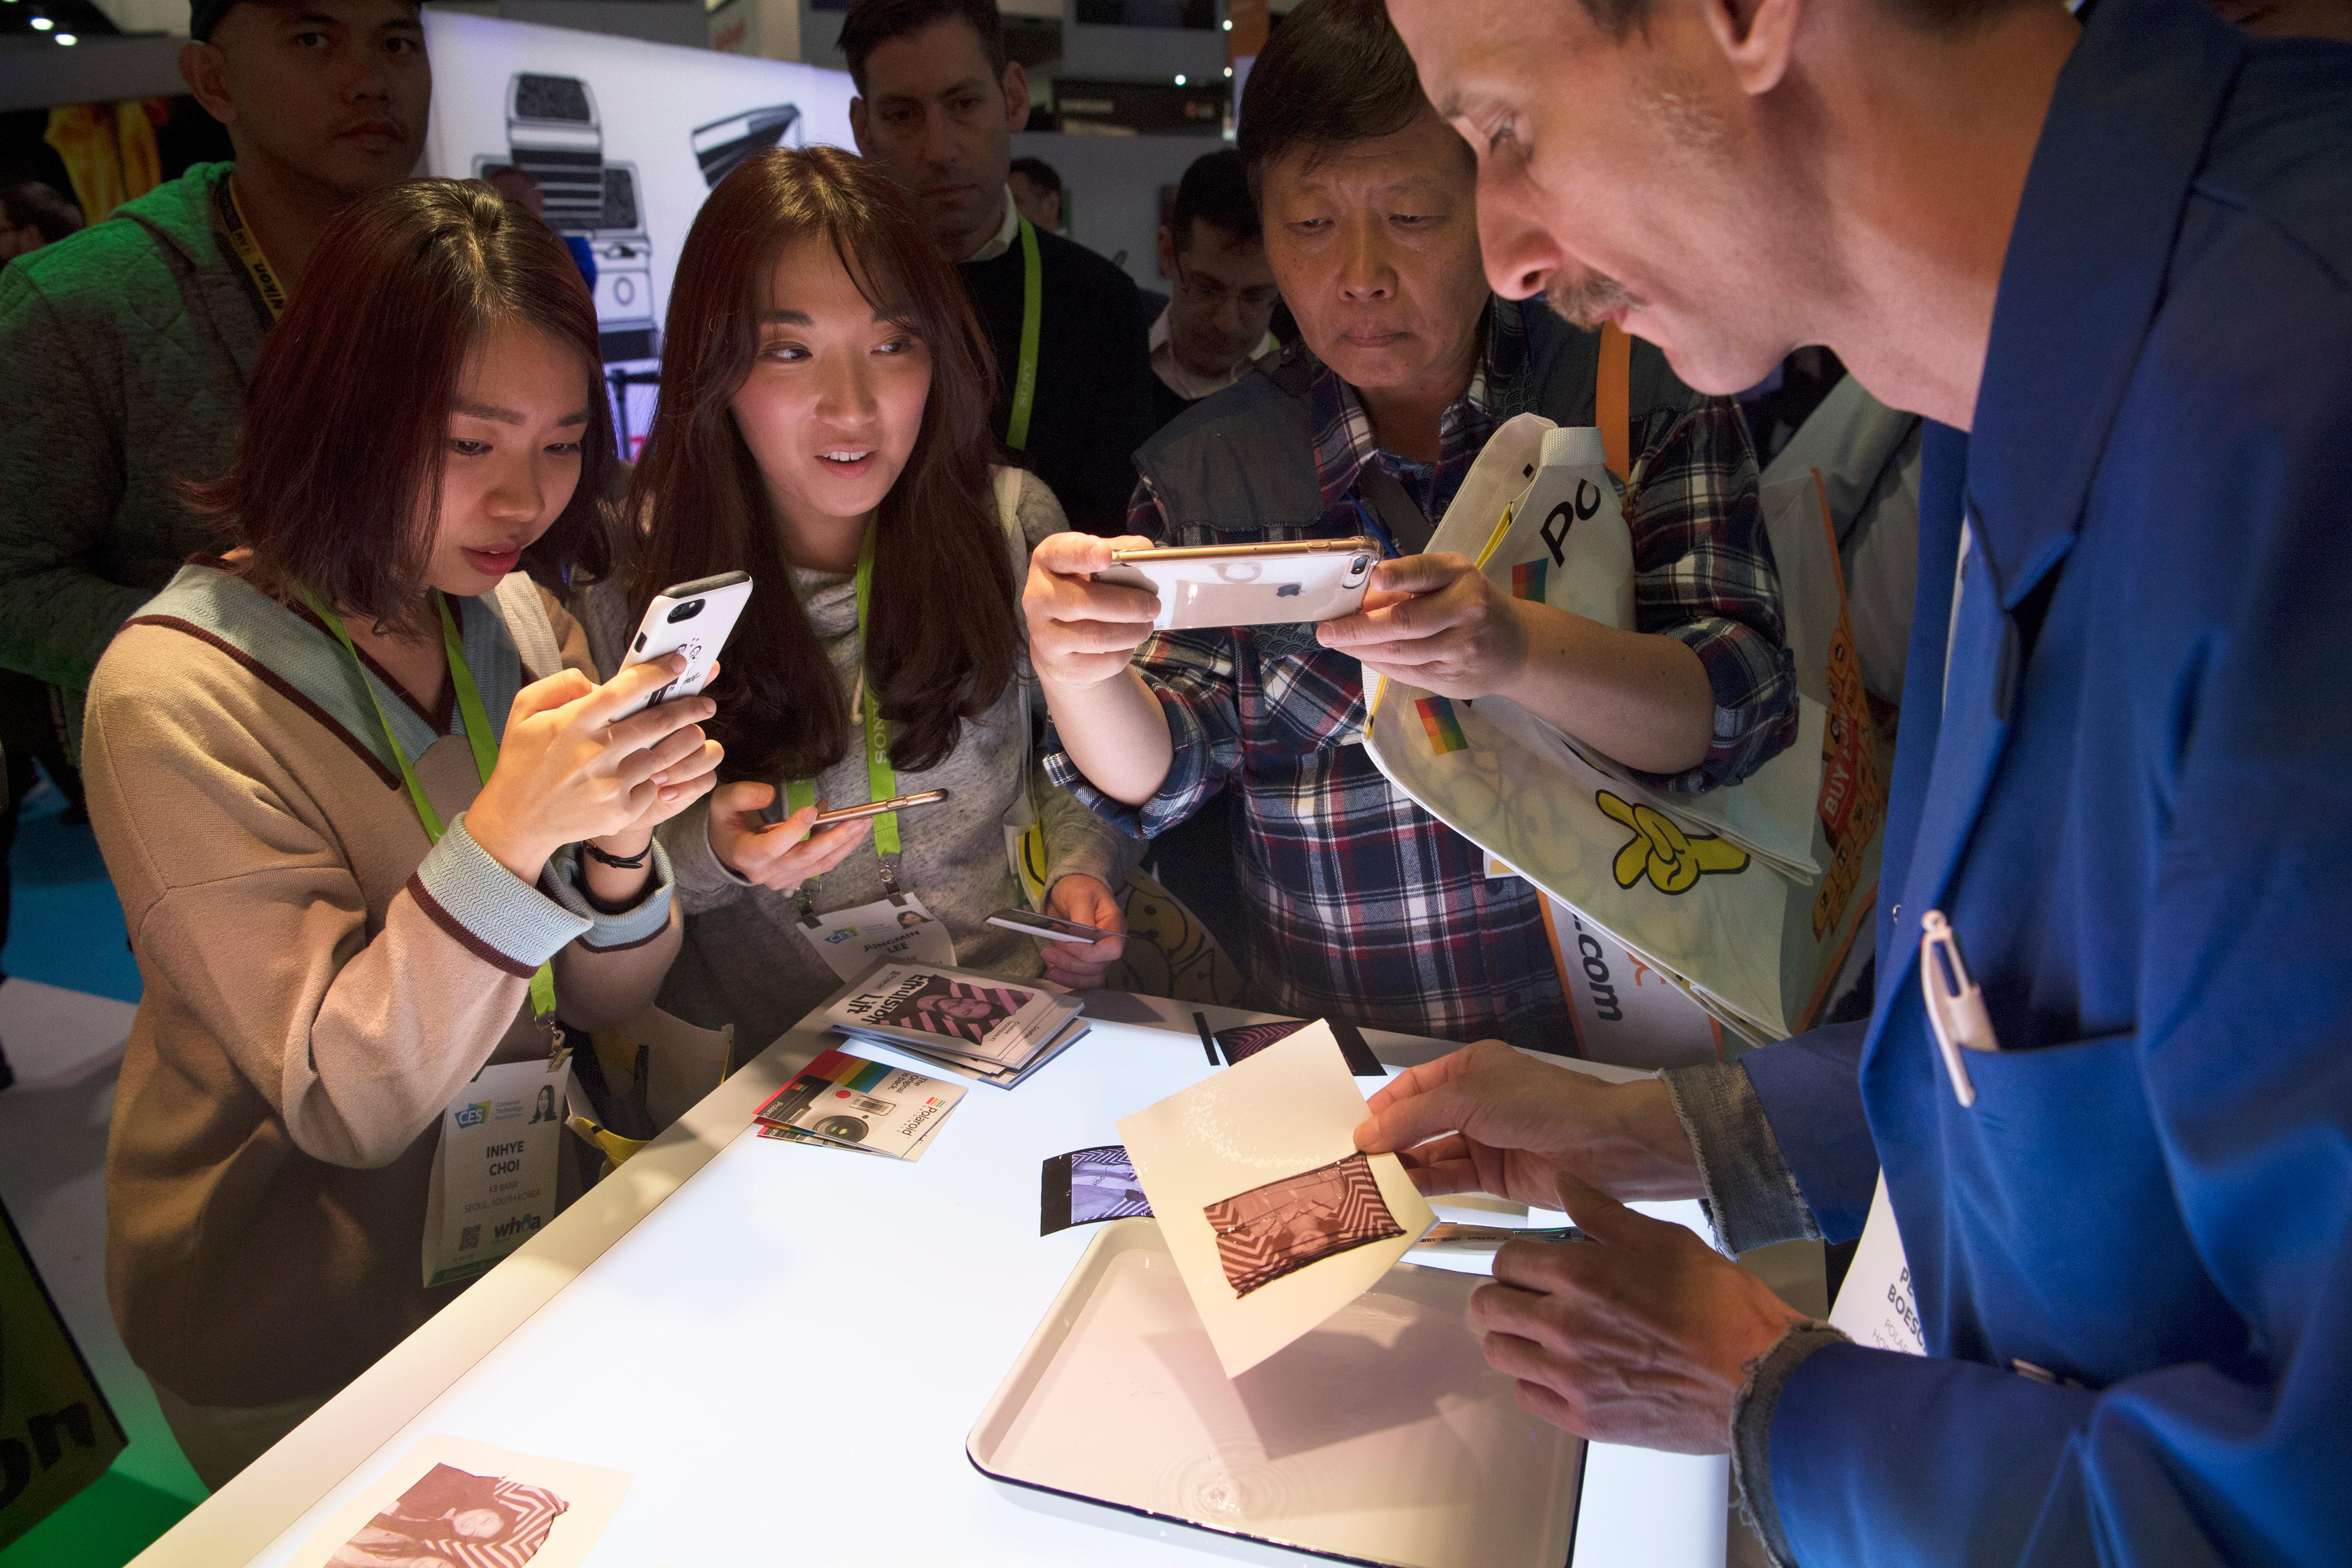 Attendees watch as Heinz Boesch demonstrates a Polaroid emulsion lift technique during the second day of CES Wednesday, January 10, 2018, at the Las Vegas Convention Center. CREDIT: Sam Morris/Las Vegas News Bureau